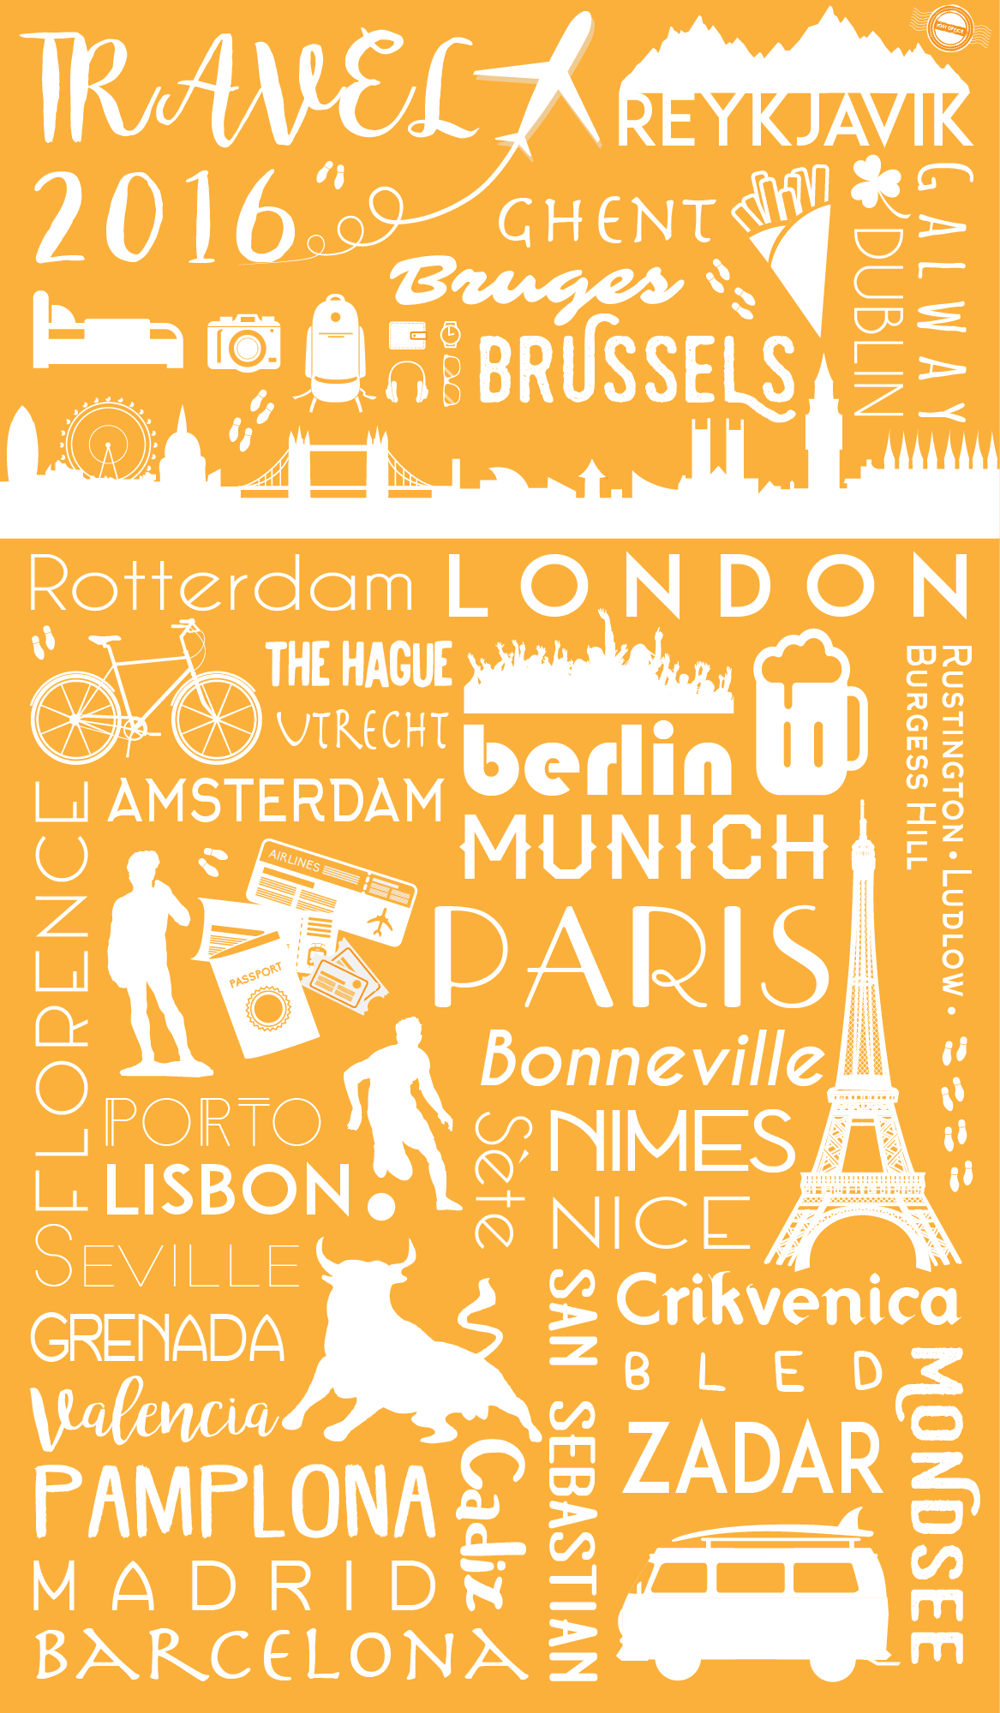 Travel 2016 Poster - image 1 - student project